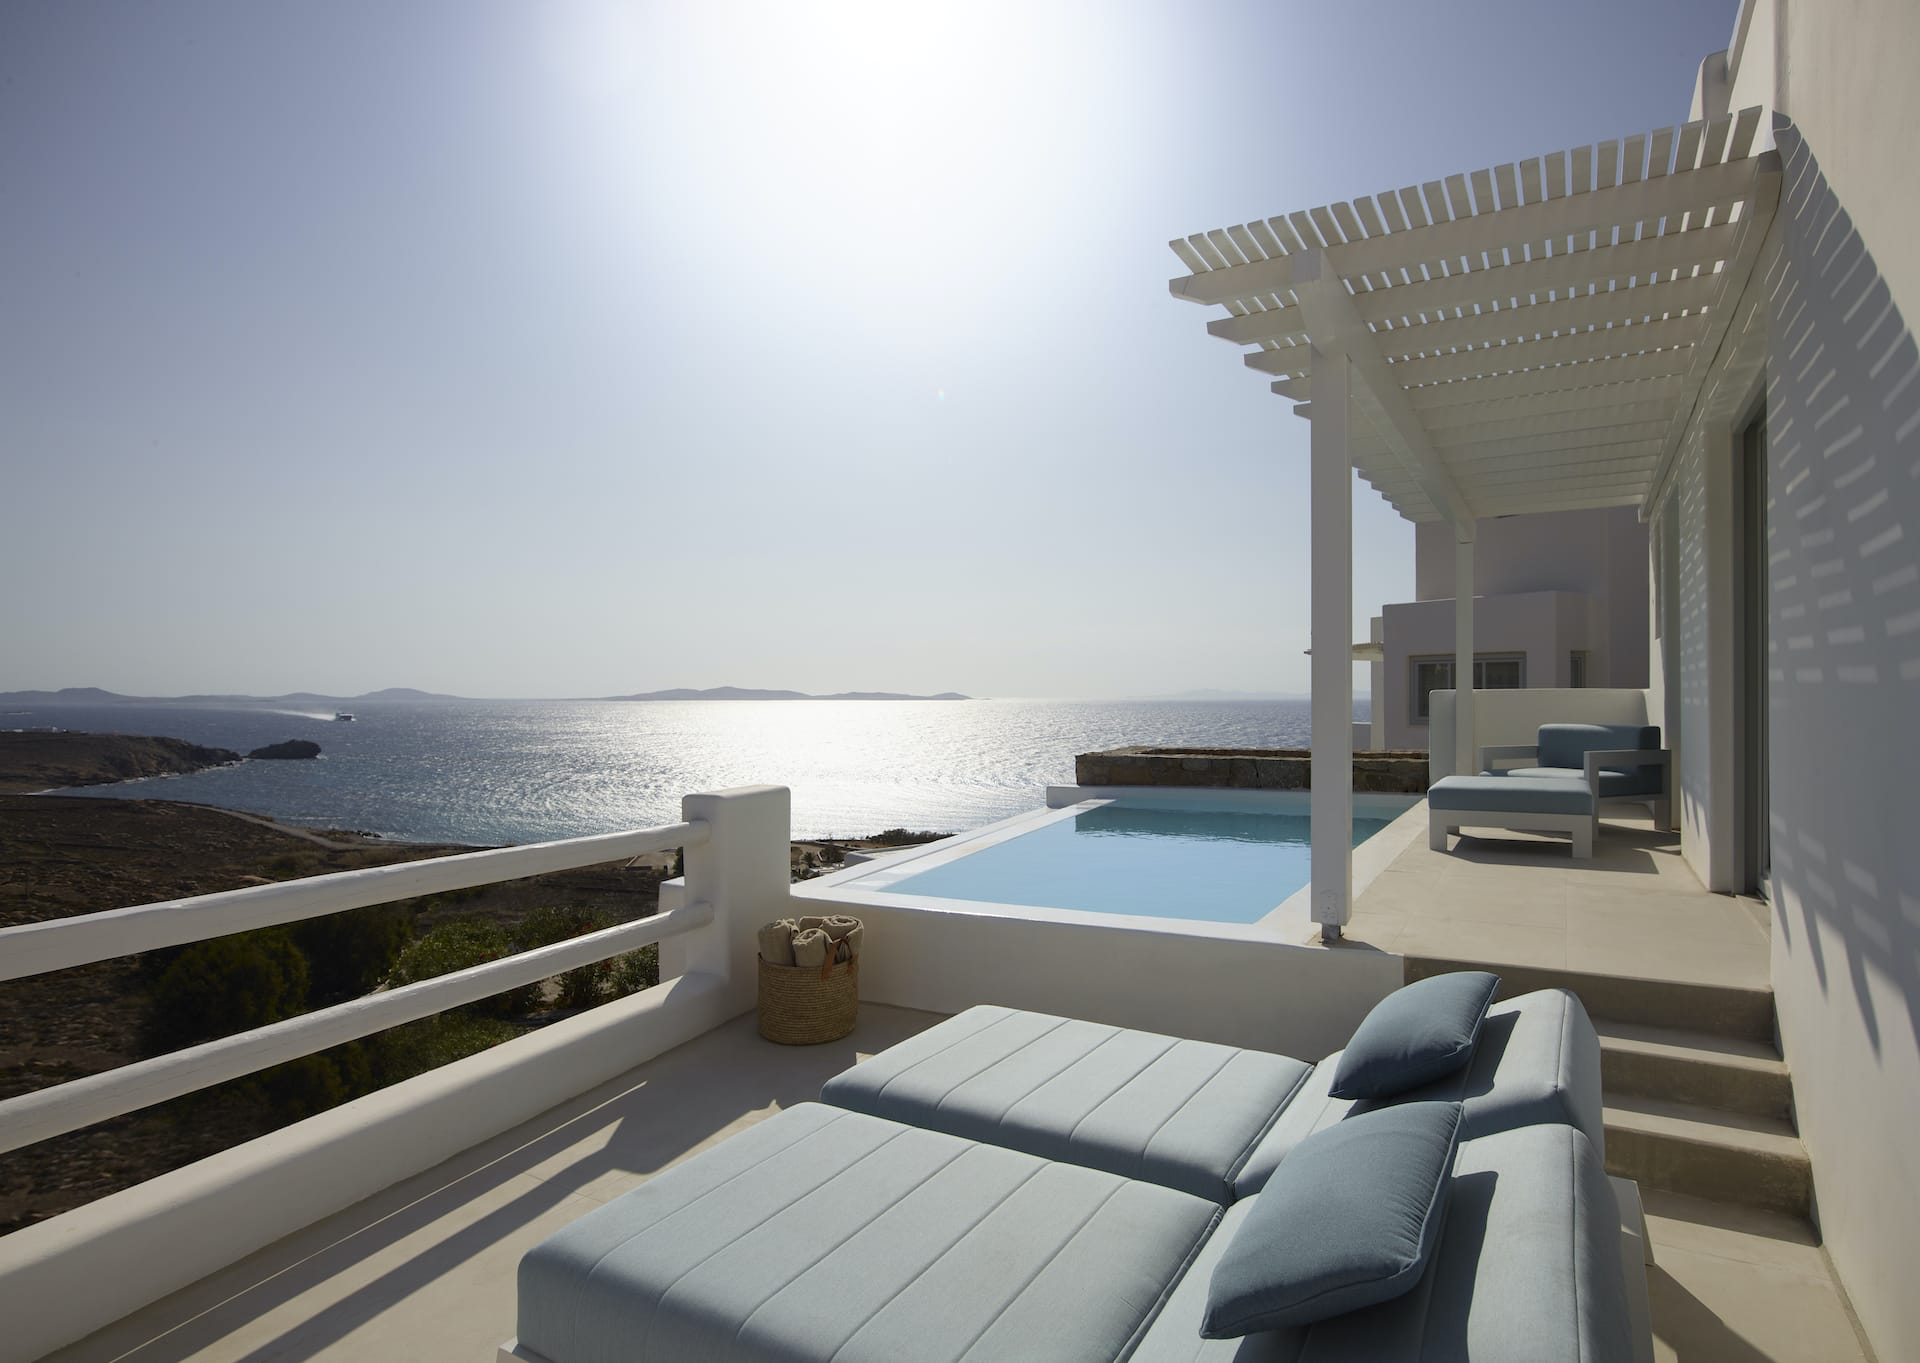 Secluded and with stunning views the brand new Epic Blue Mykonos is a seaview luxury hotel in Houlakia, Mykonos offering tailor-made experiences.